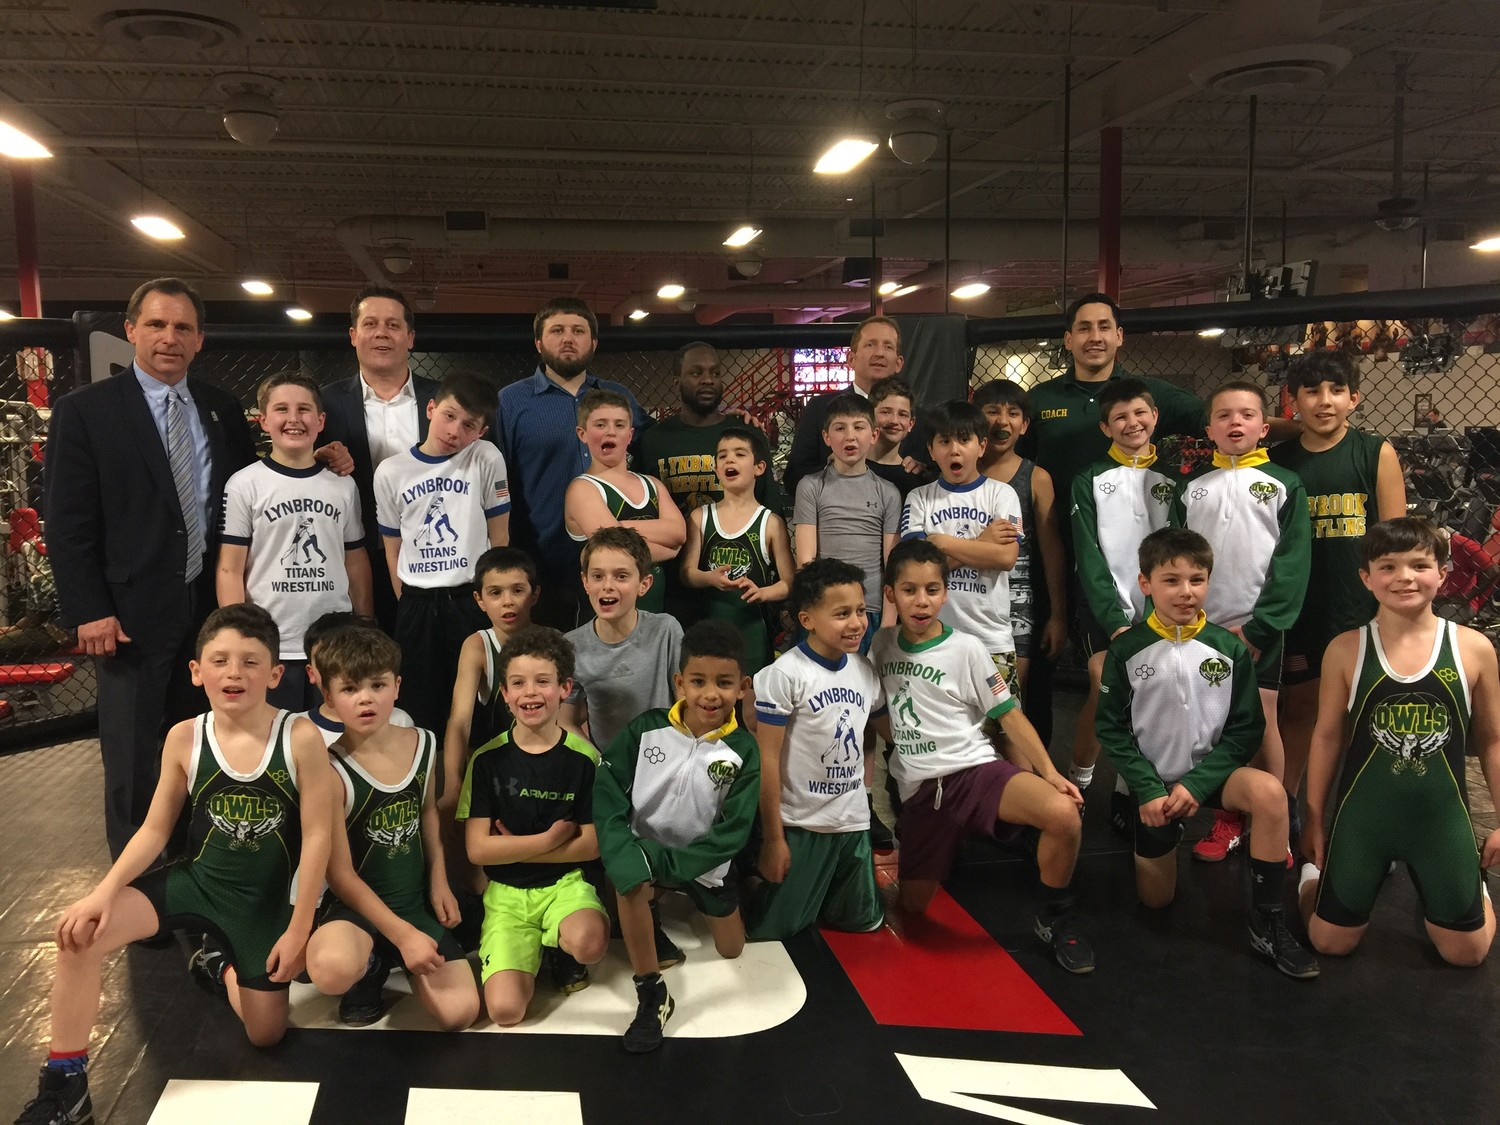 The Lynbrook Titans Wrestling program is kicking off its 39th season on Dec. 8.